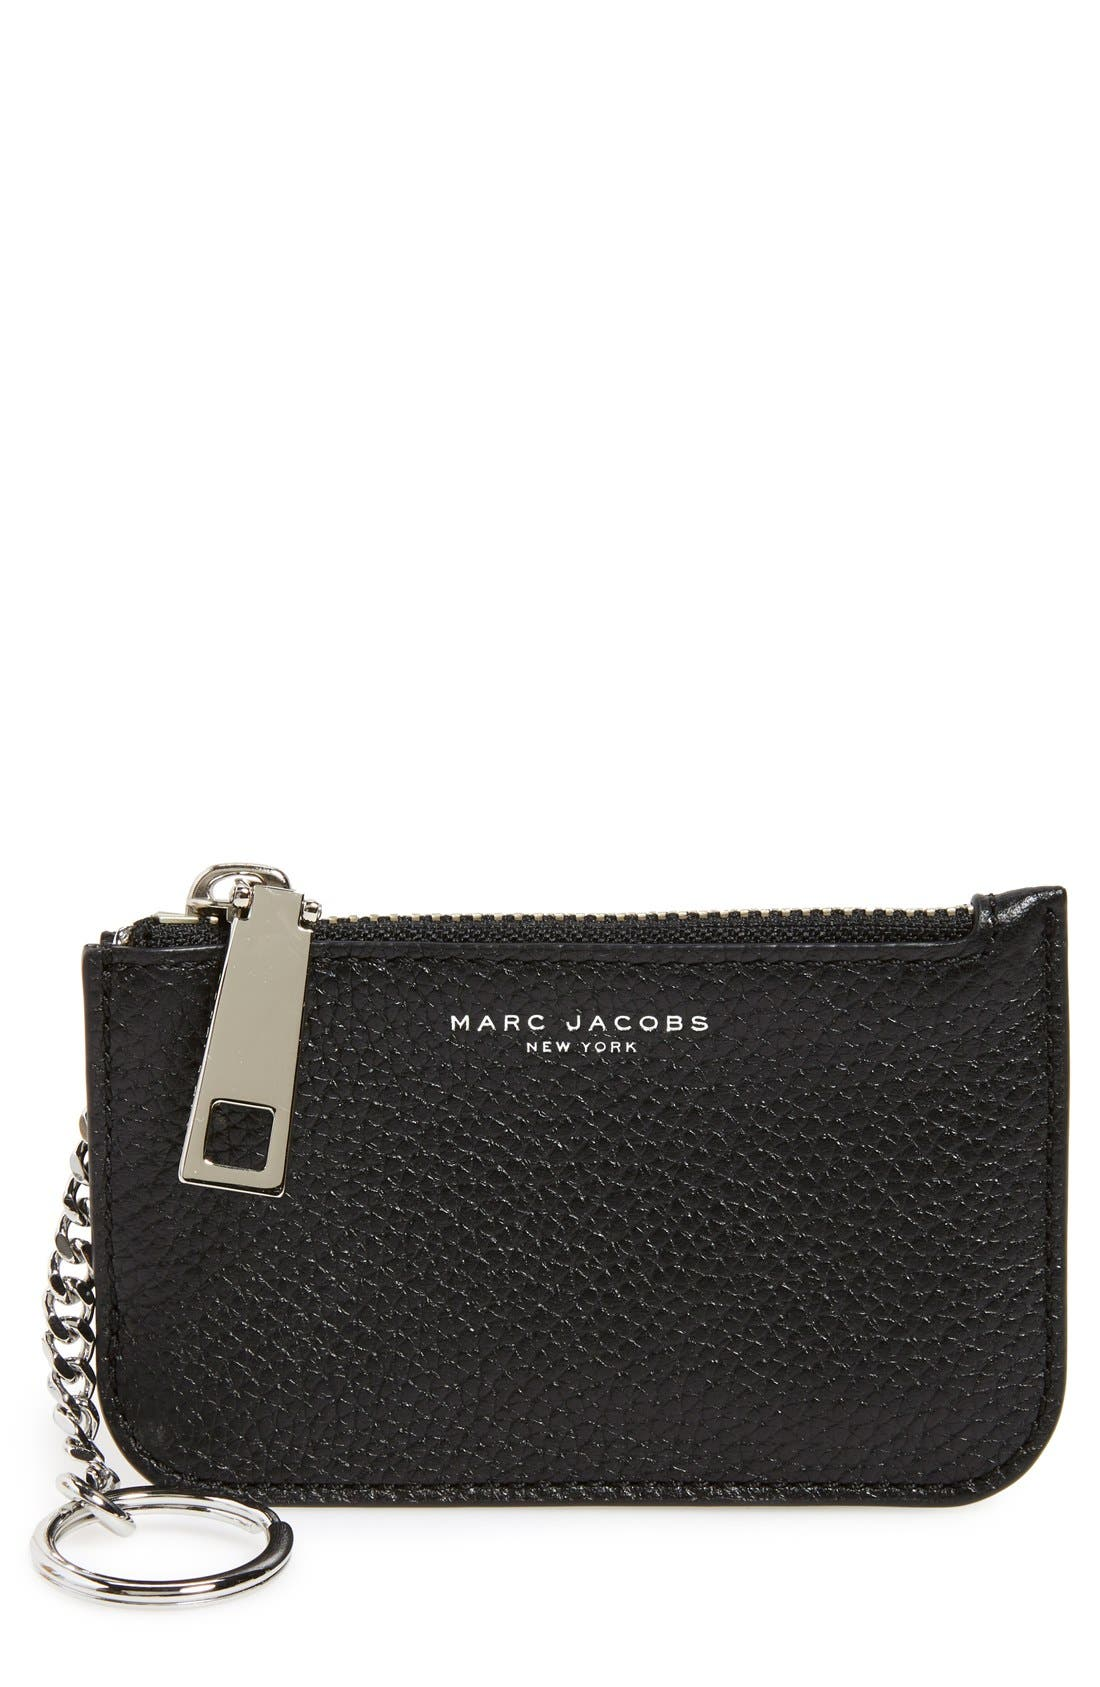 MARC JACOBS 'Gotham' Pebbled Leather Key Pouch